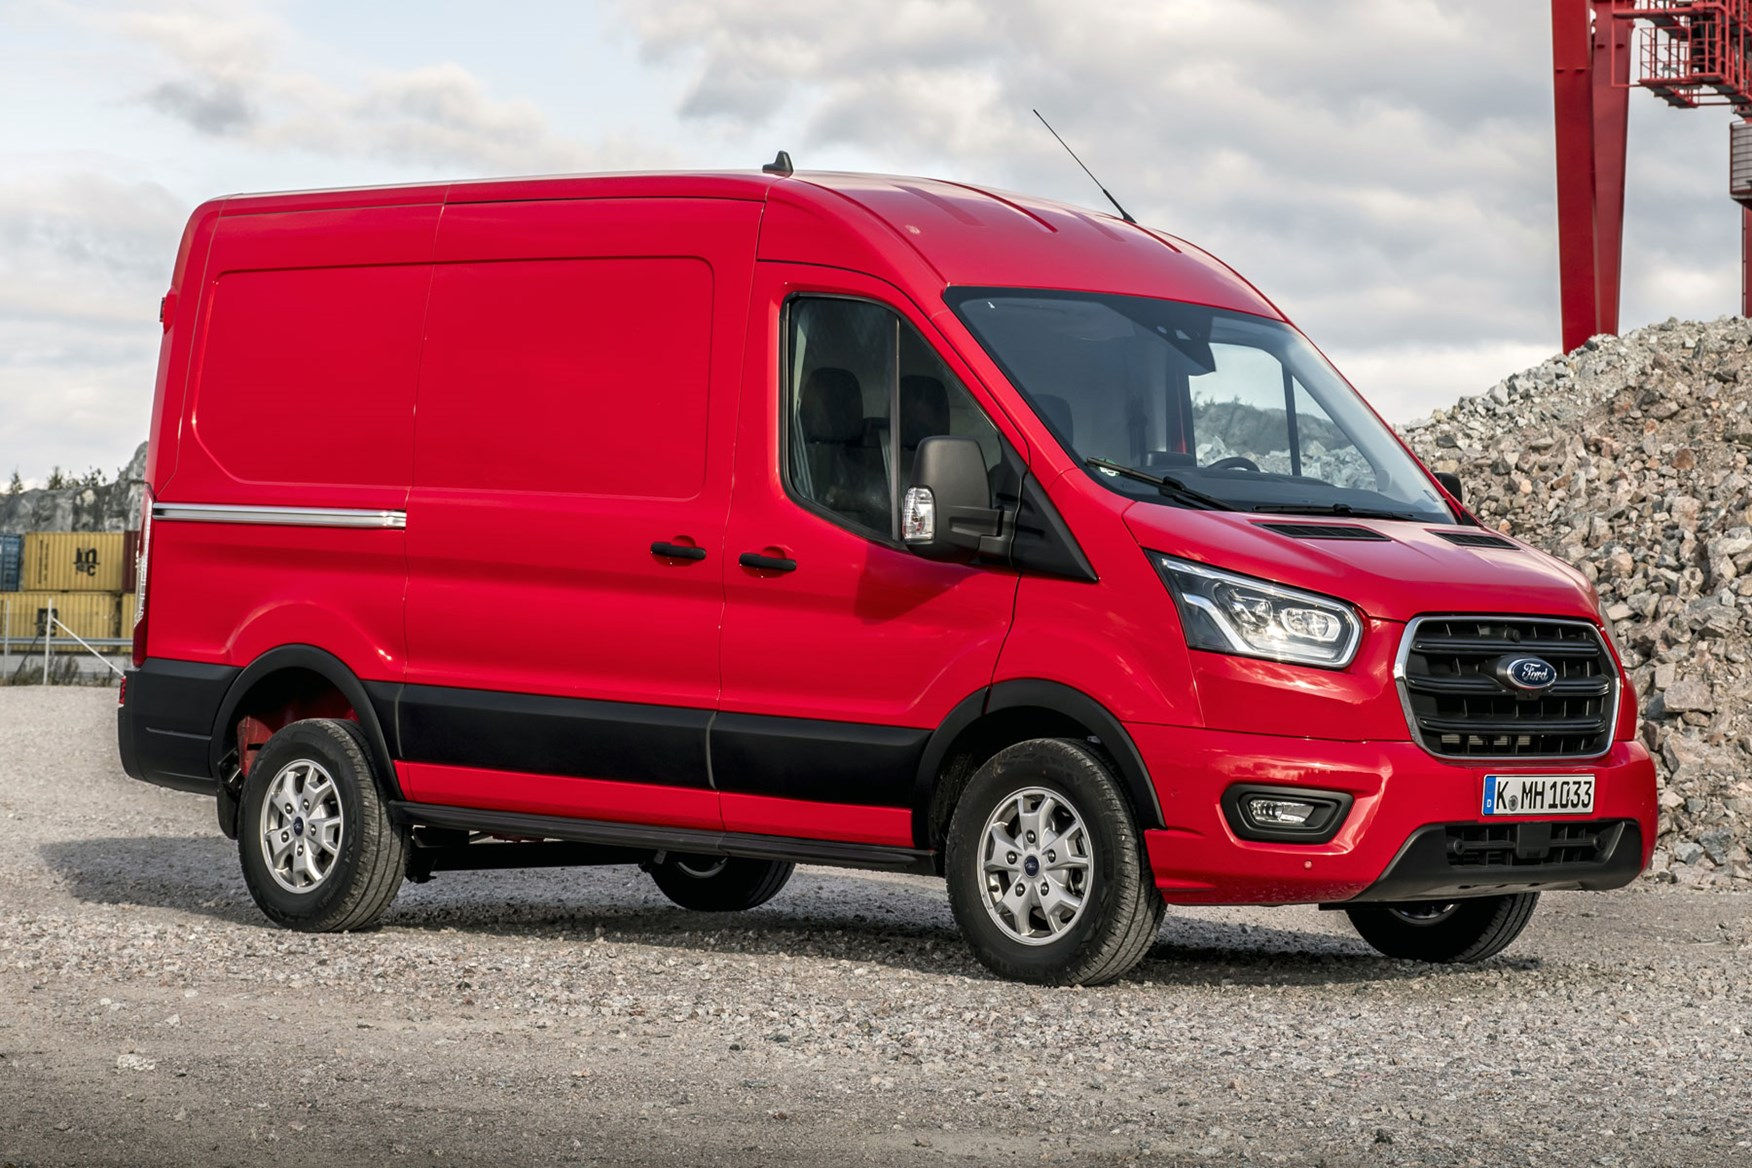 Ford Transit dimensions - 2019 facelift model, front view, panel van, red